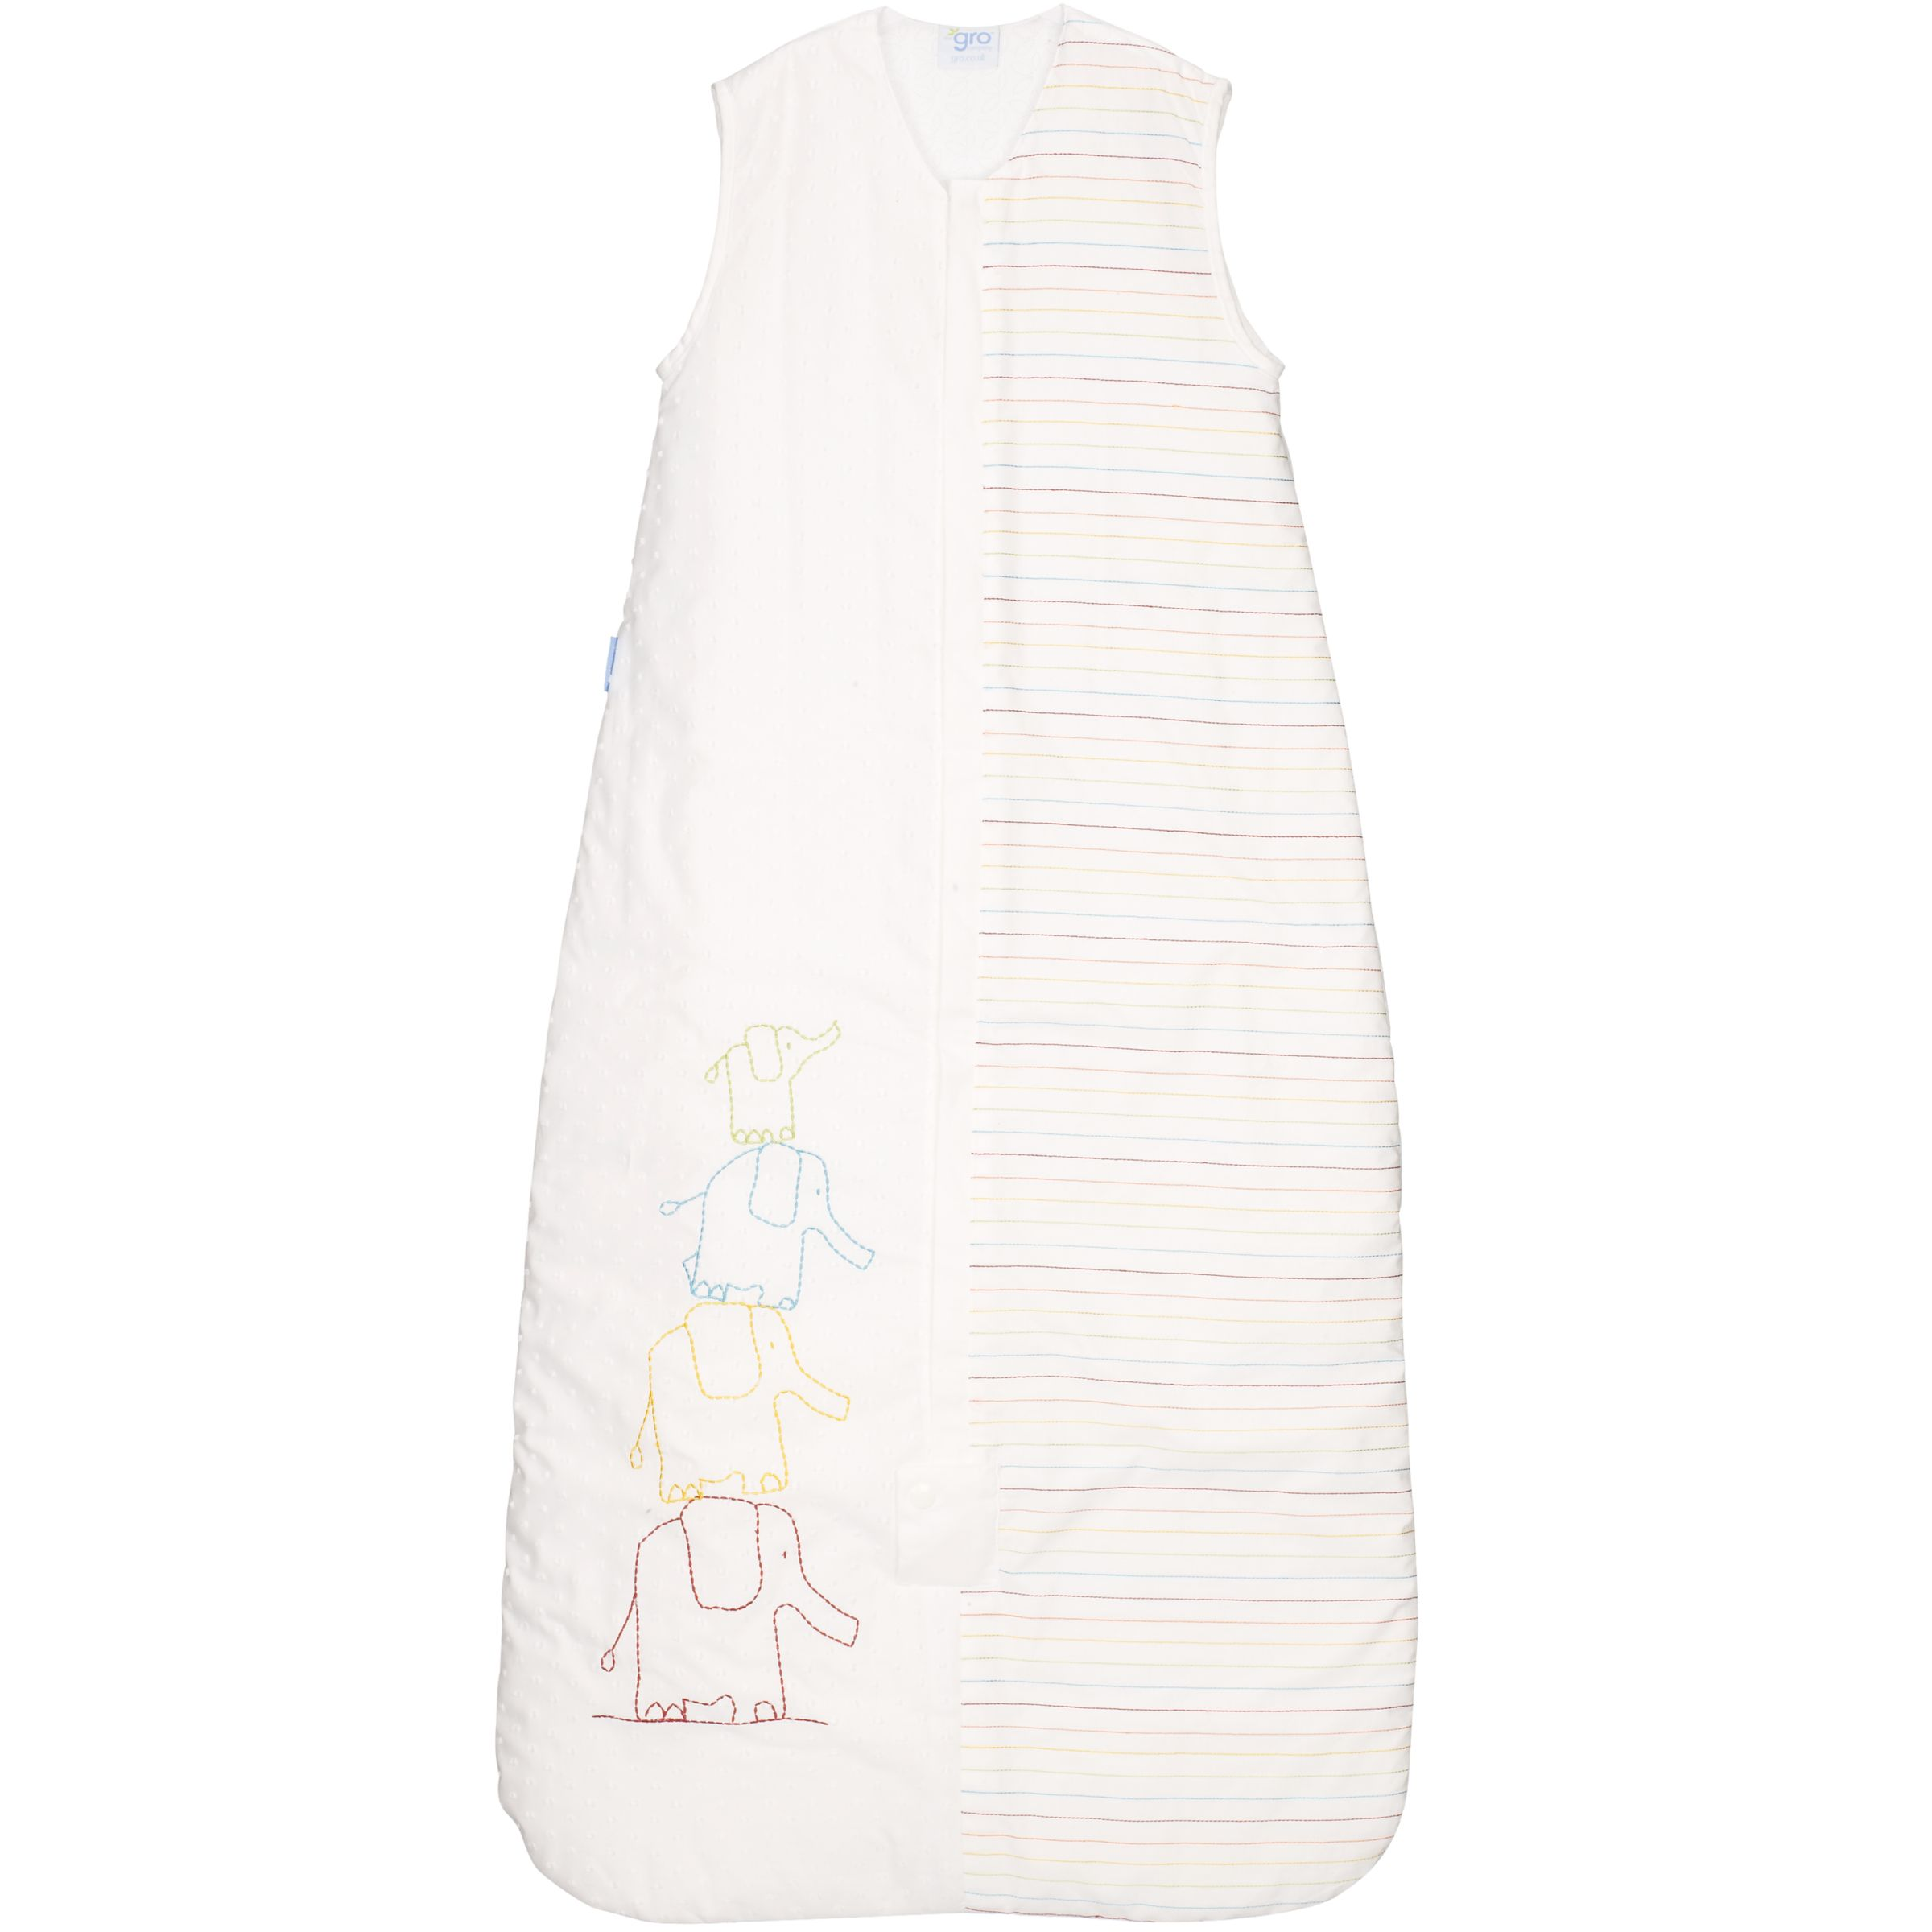 Grand Day Out Sleeping Bag, 2.5 Tog, White